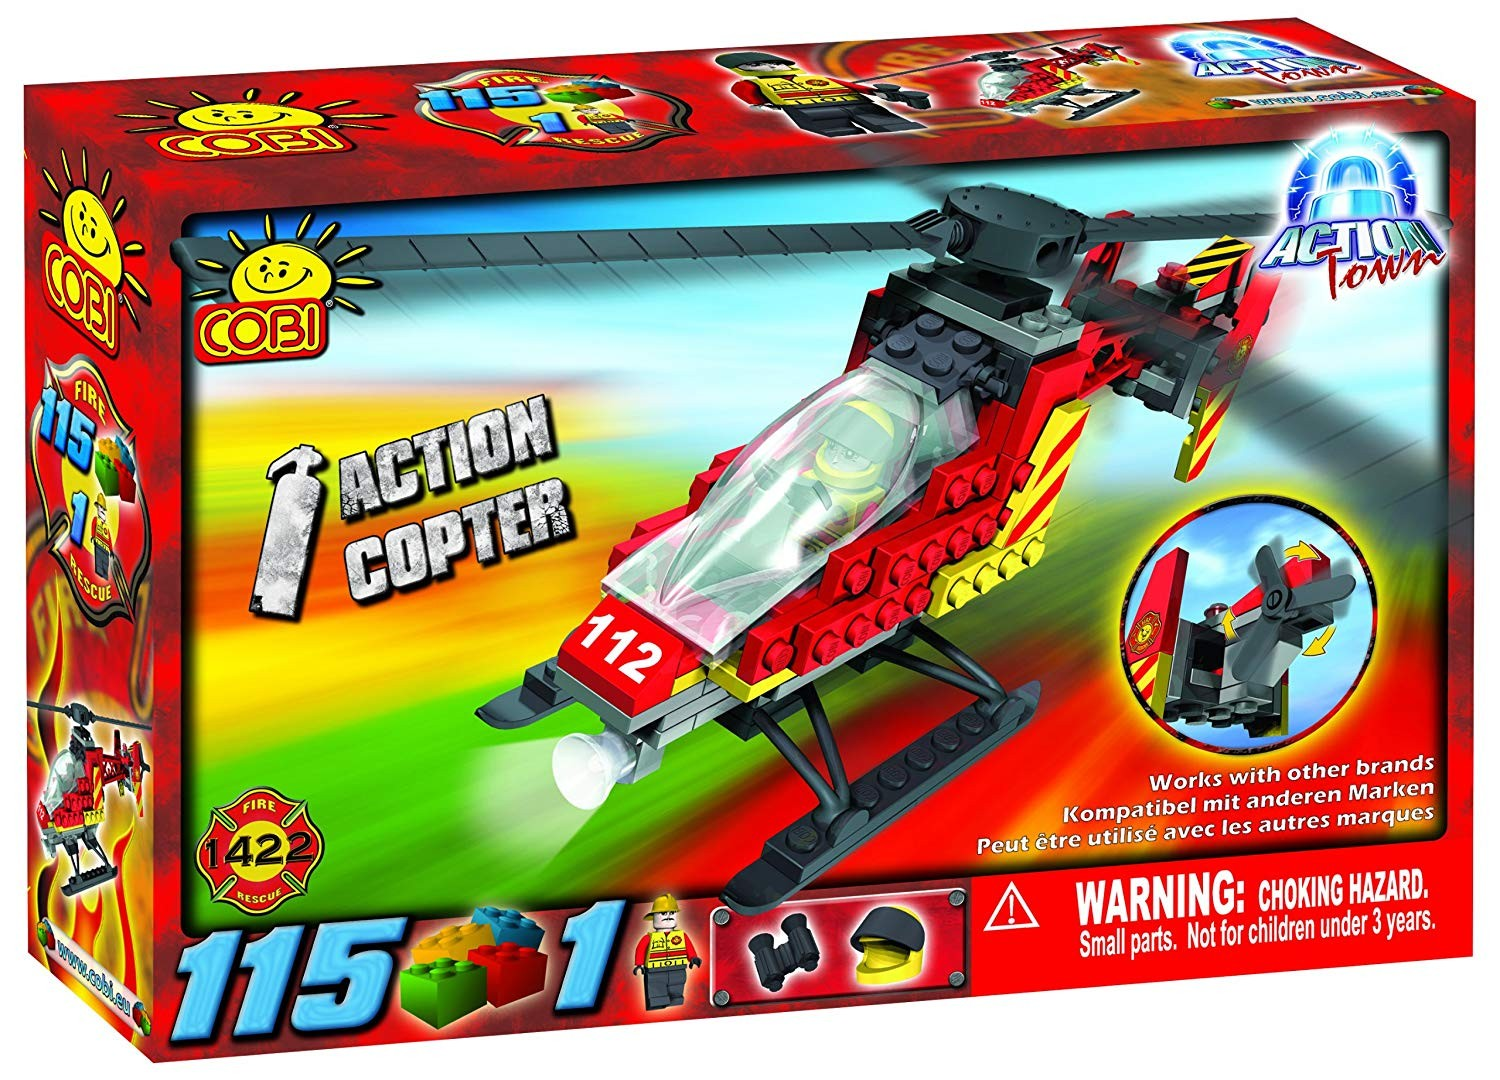 1422 - Action Copter